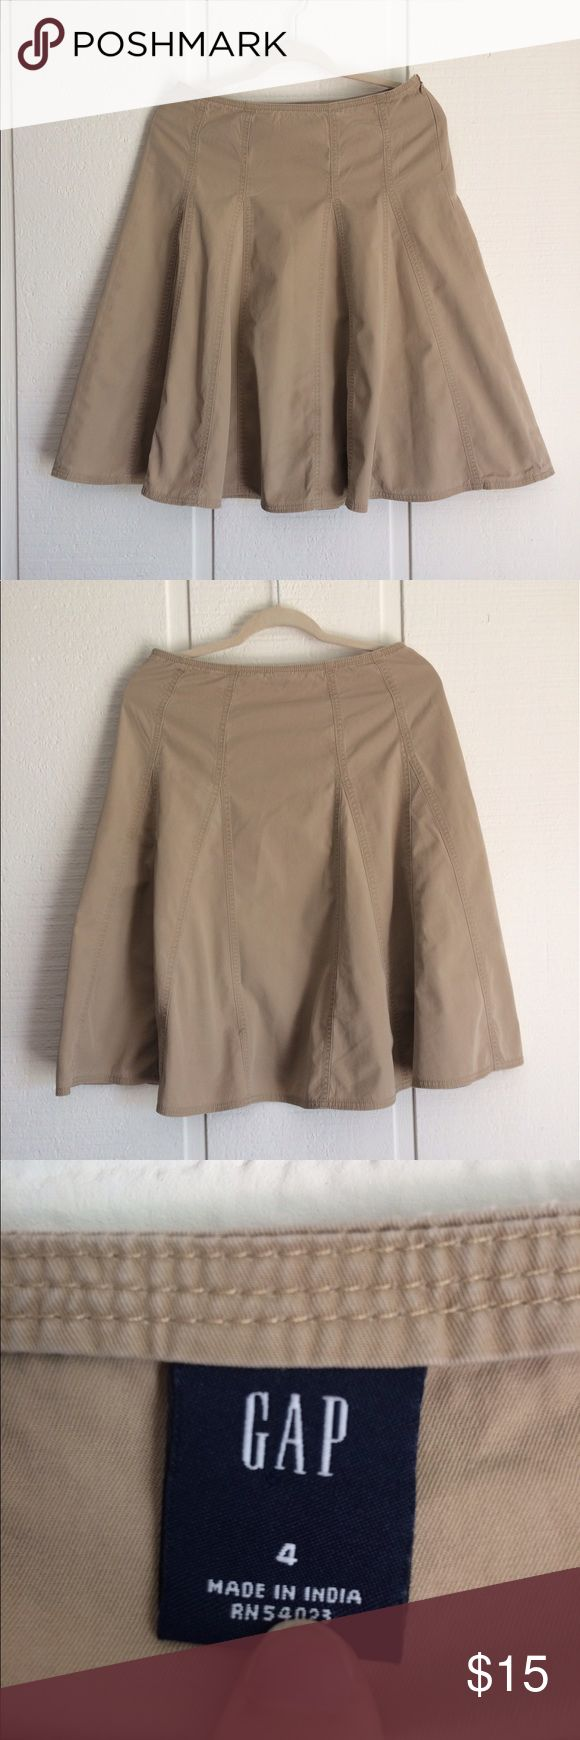 Tan Gap Skirt This skirt is in great shape and is a lovely versatile tan. Flares at the bottom. Super cute for all seasons! GAP Skirts